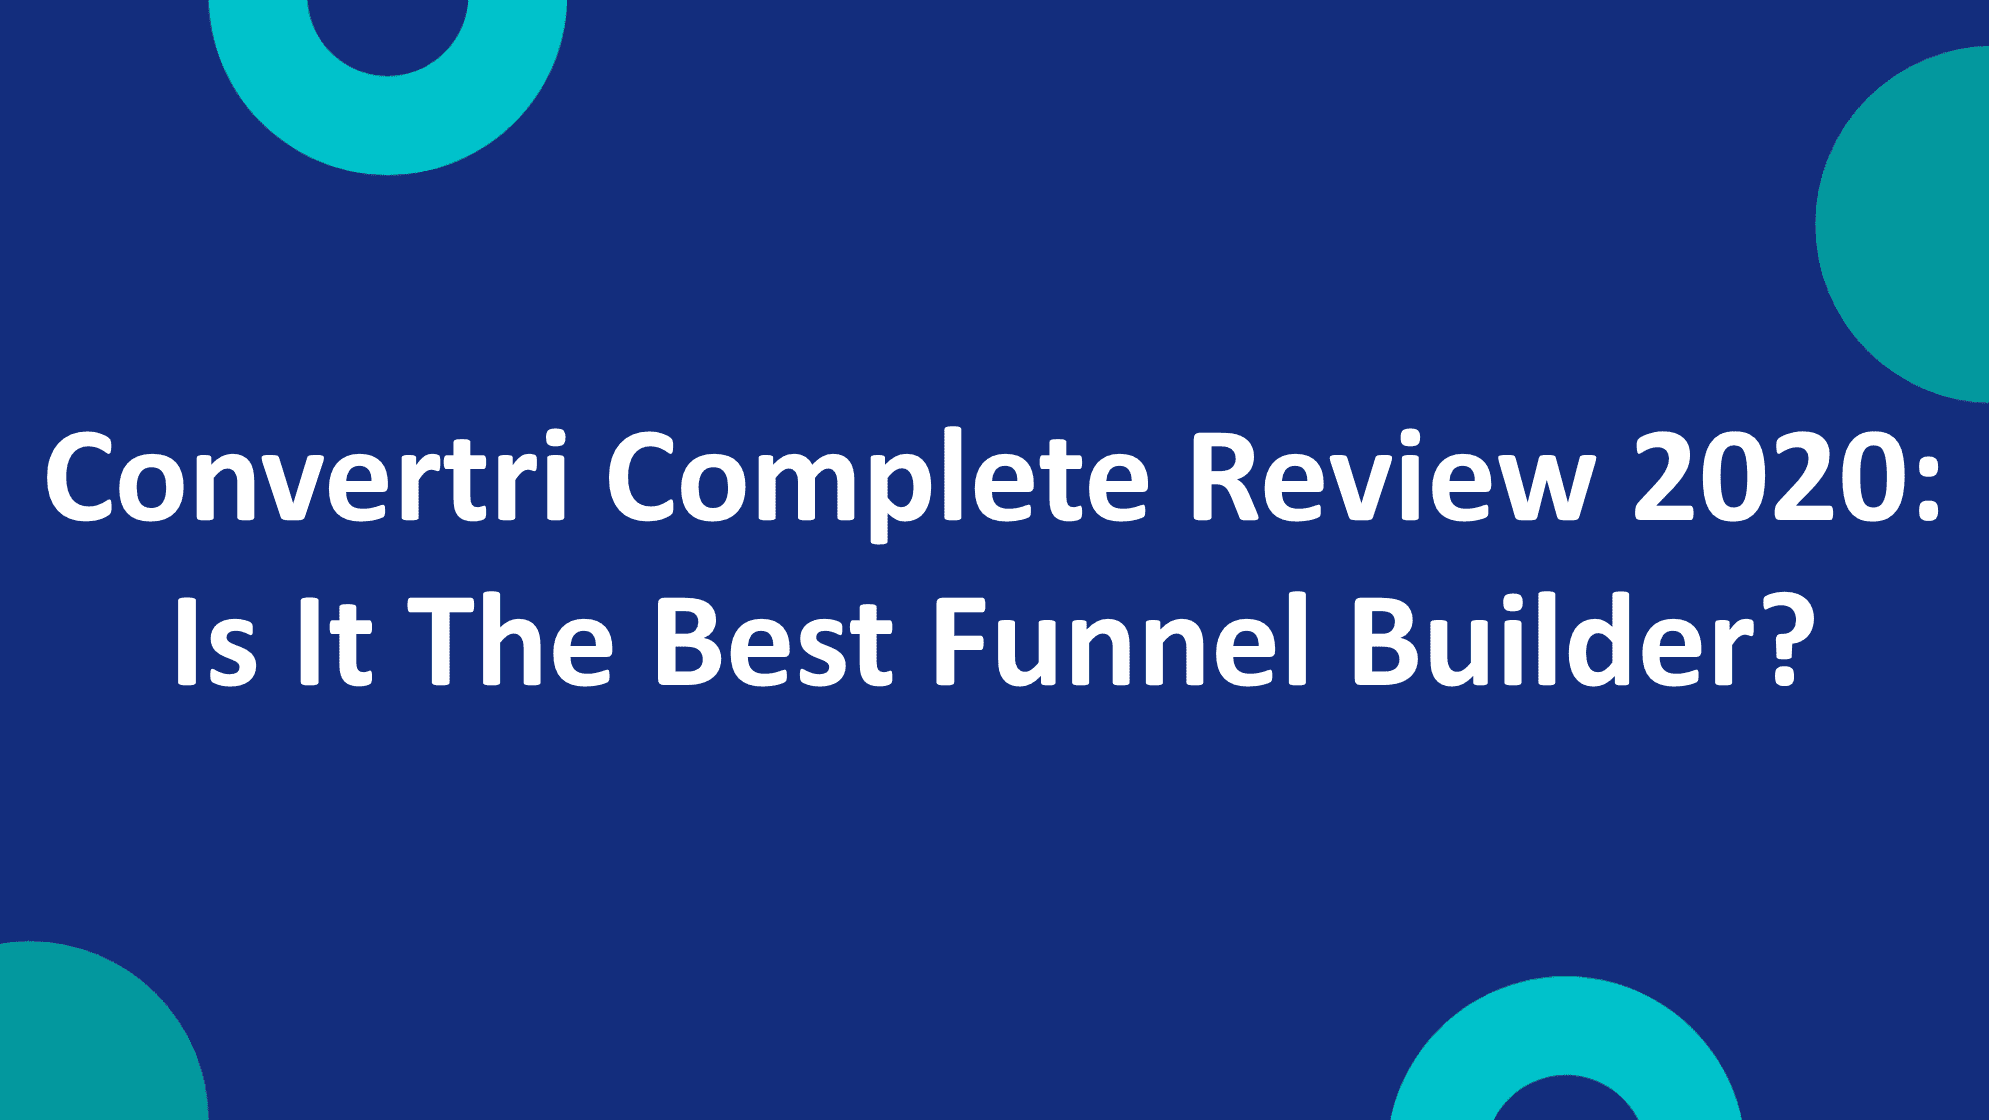 Convertri Complete Review 2020